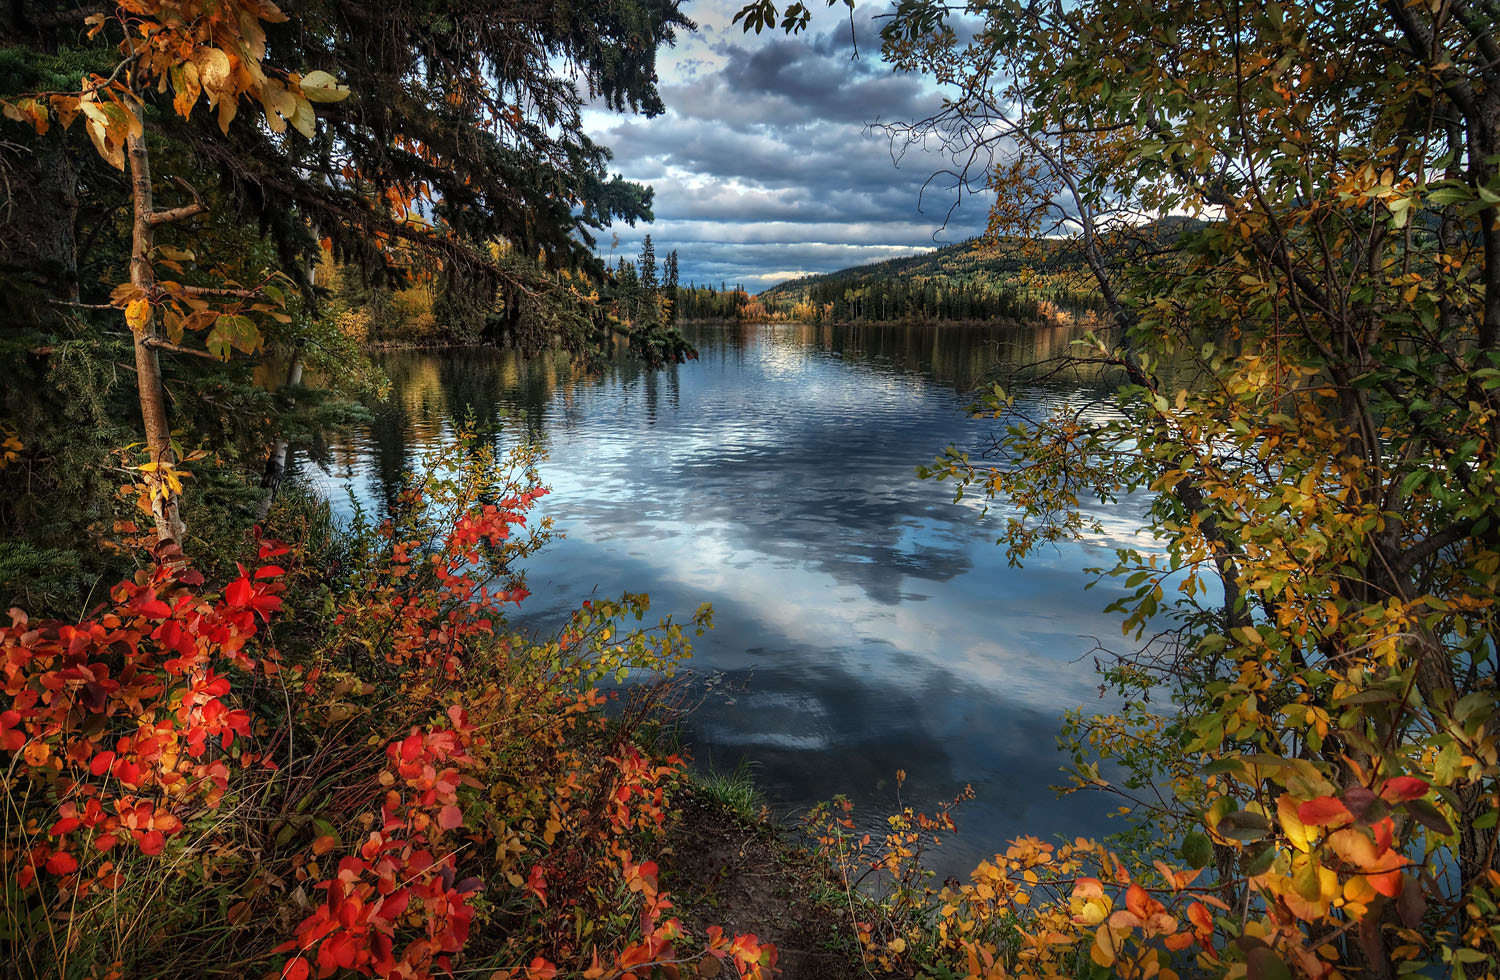 Photograph Fall Colours by Bob Bittner on 500px